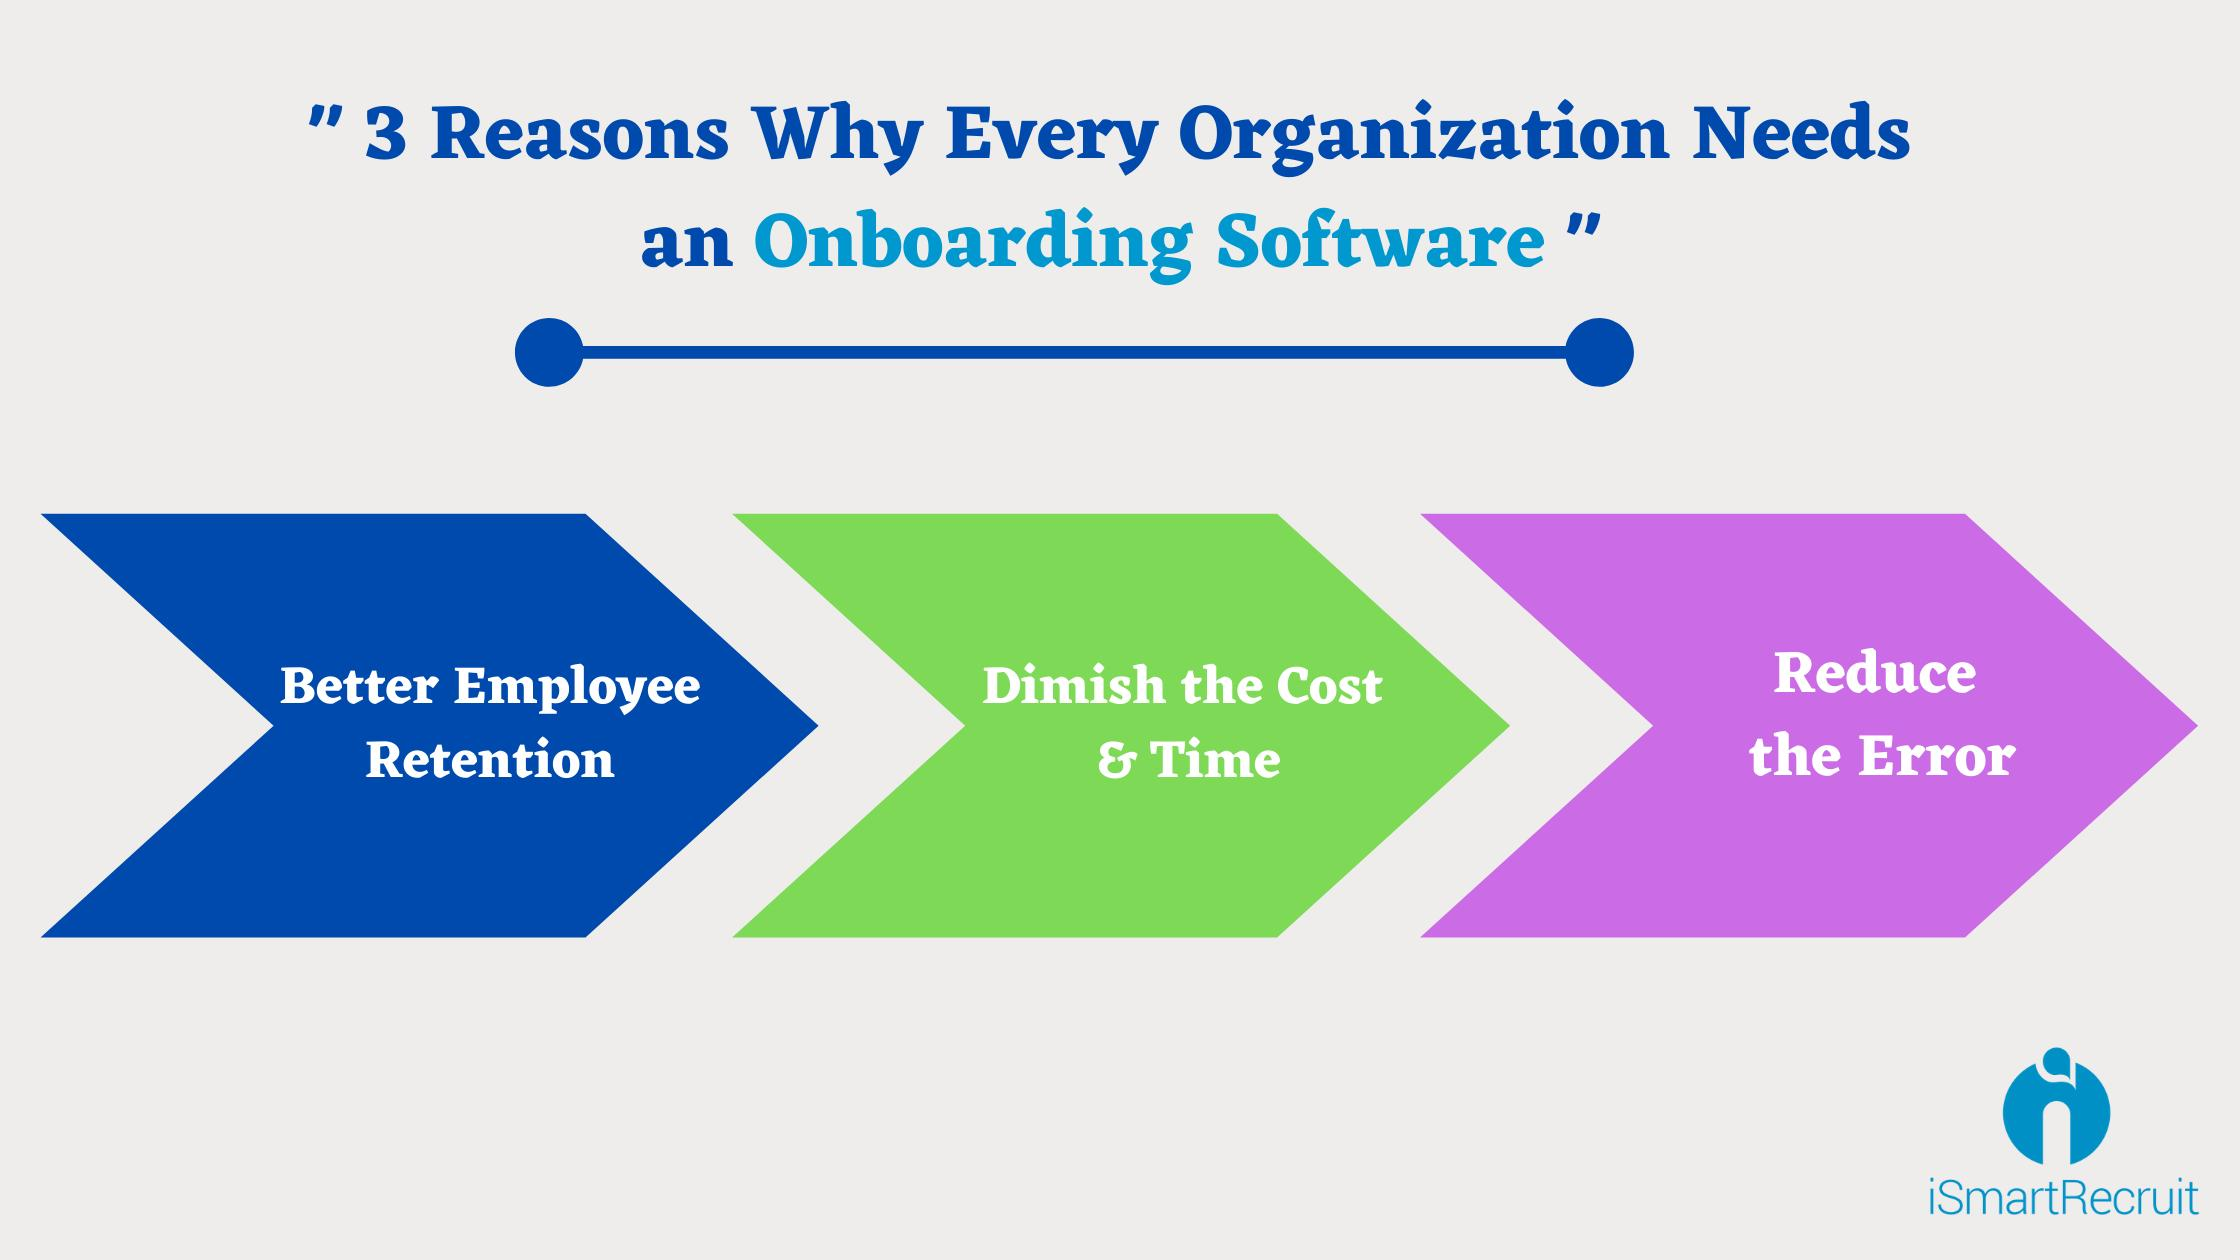 Why Every Organization Needs an Onboarding Software